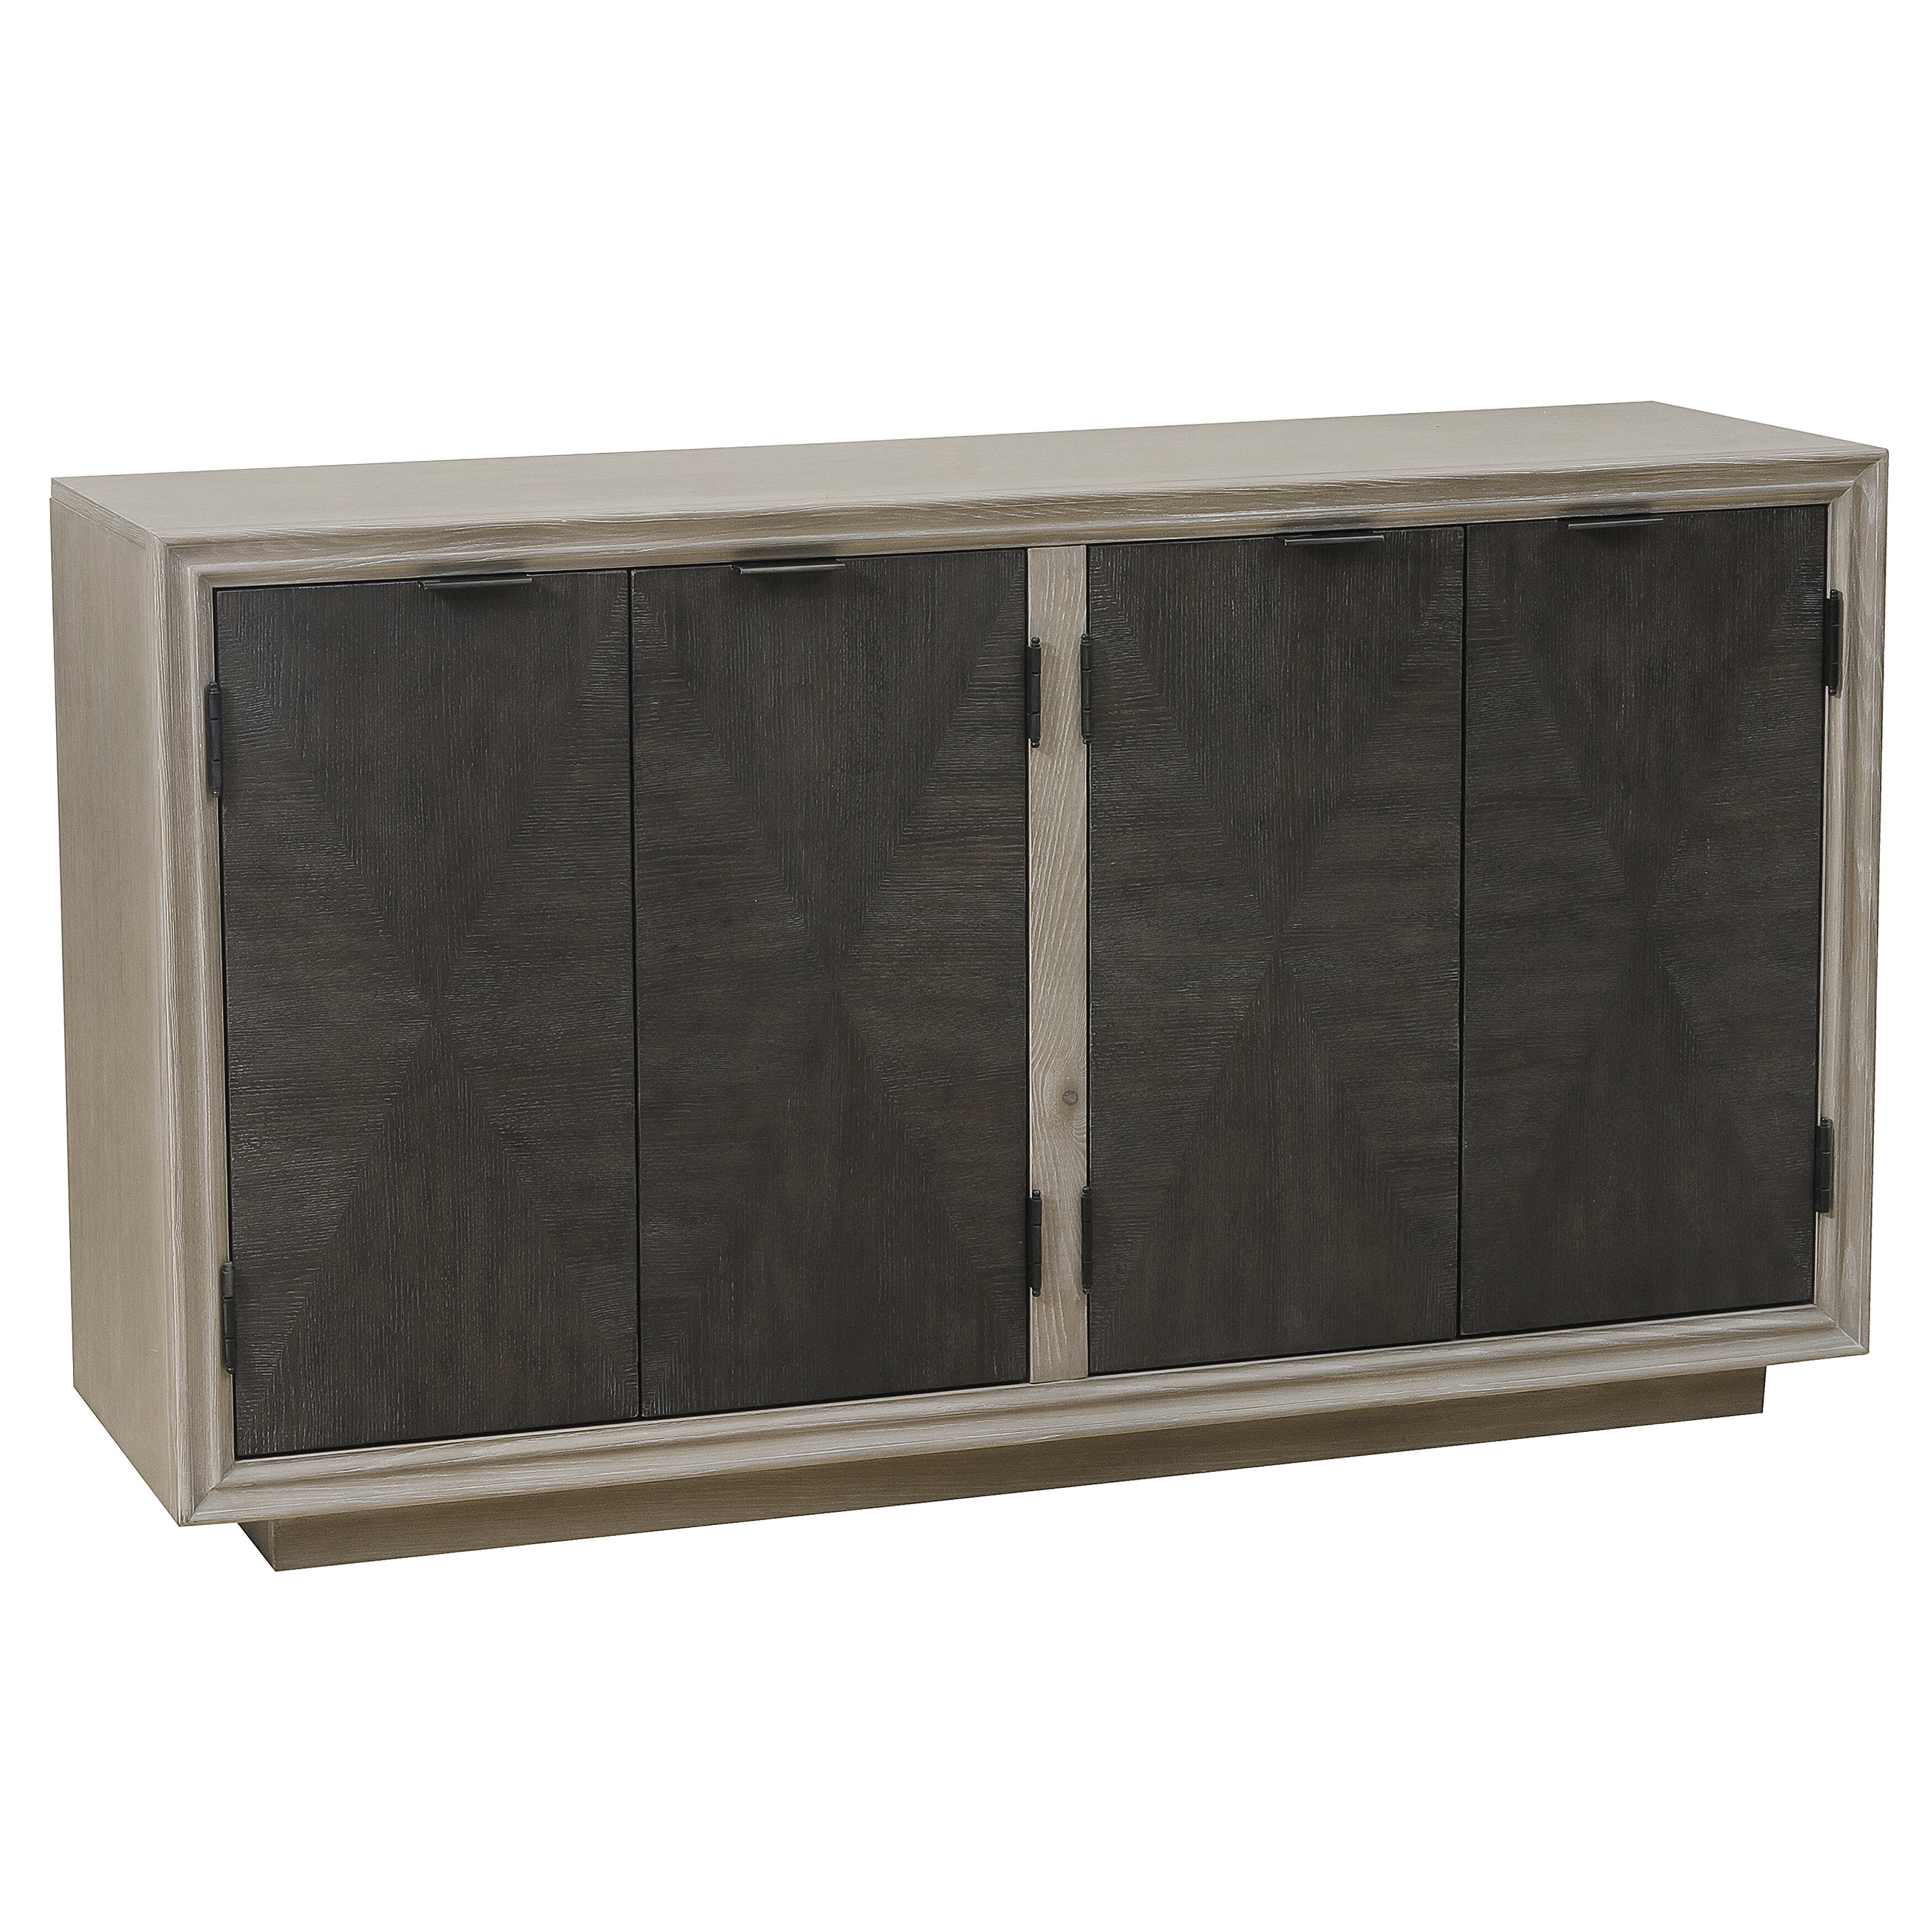 Massillon Sideboards Pertaining To Latest Hoover Four Door Duotone Parquet Sideboard (View 12 of 20)